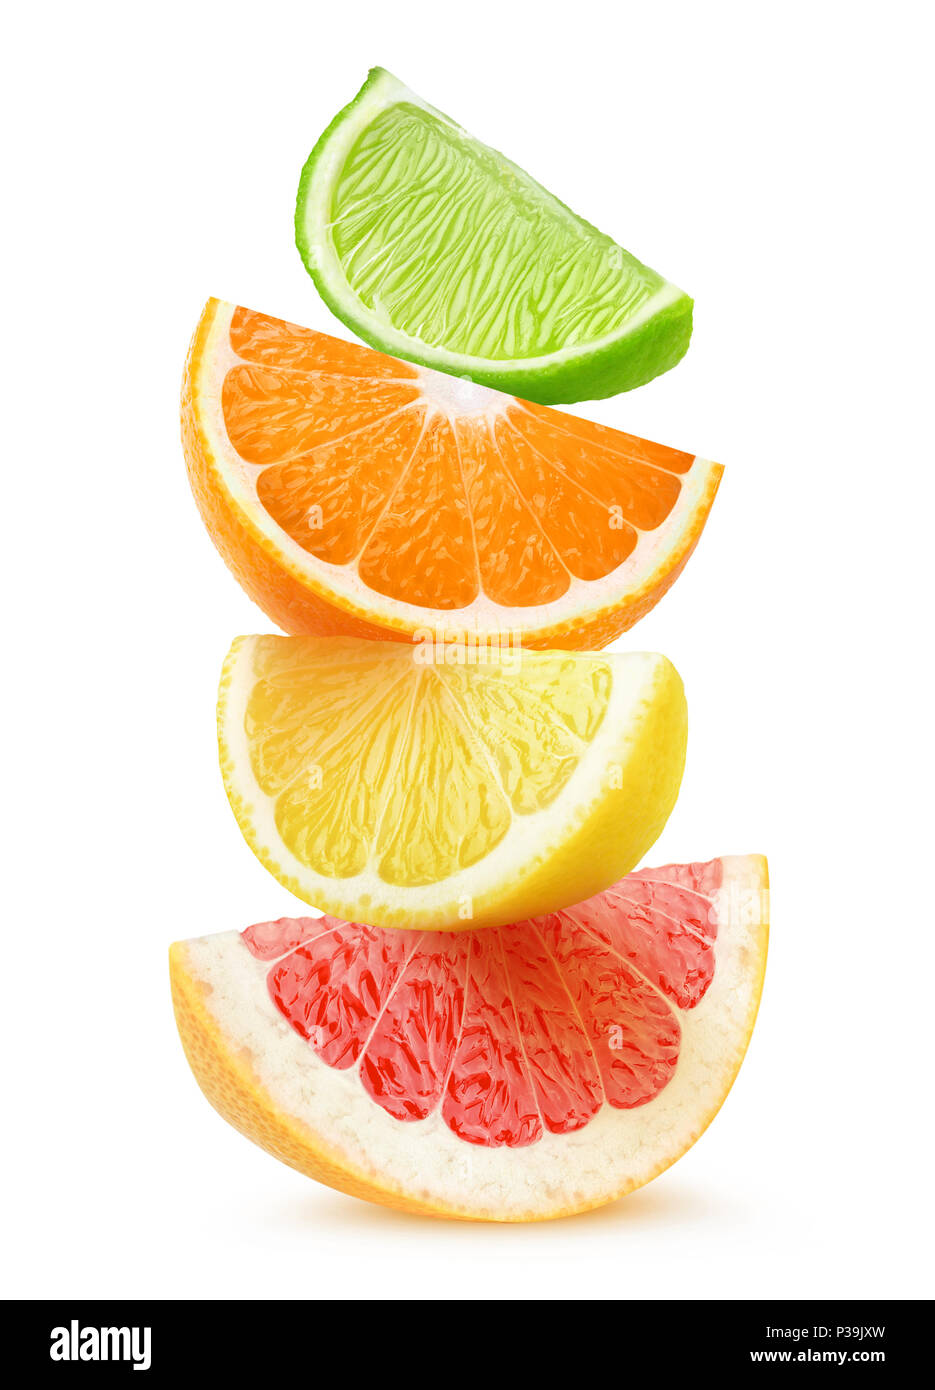 Isolated citrus slices. Pieces of grapefruit, orange, lemon and lime fruits on top of each other isolated on white background with clipping path Stock Photo